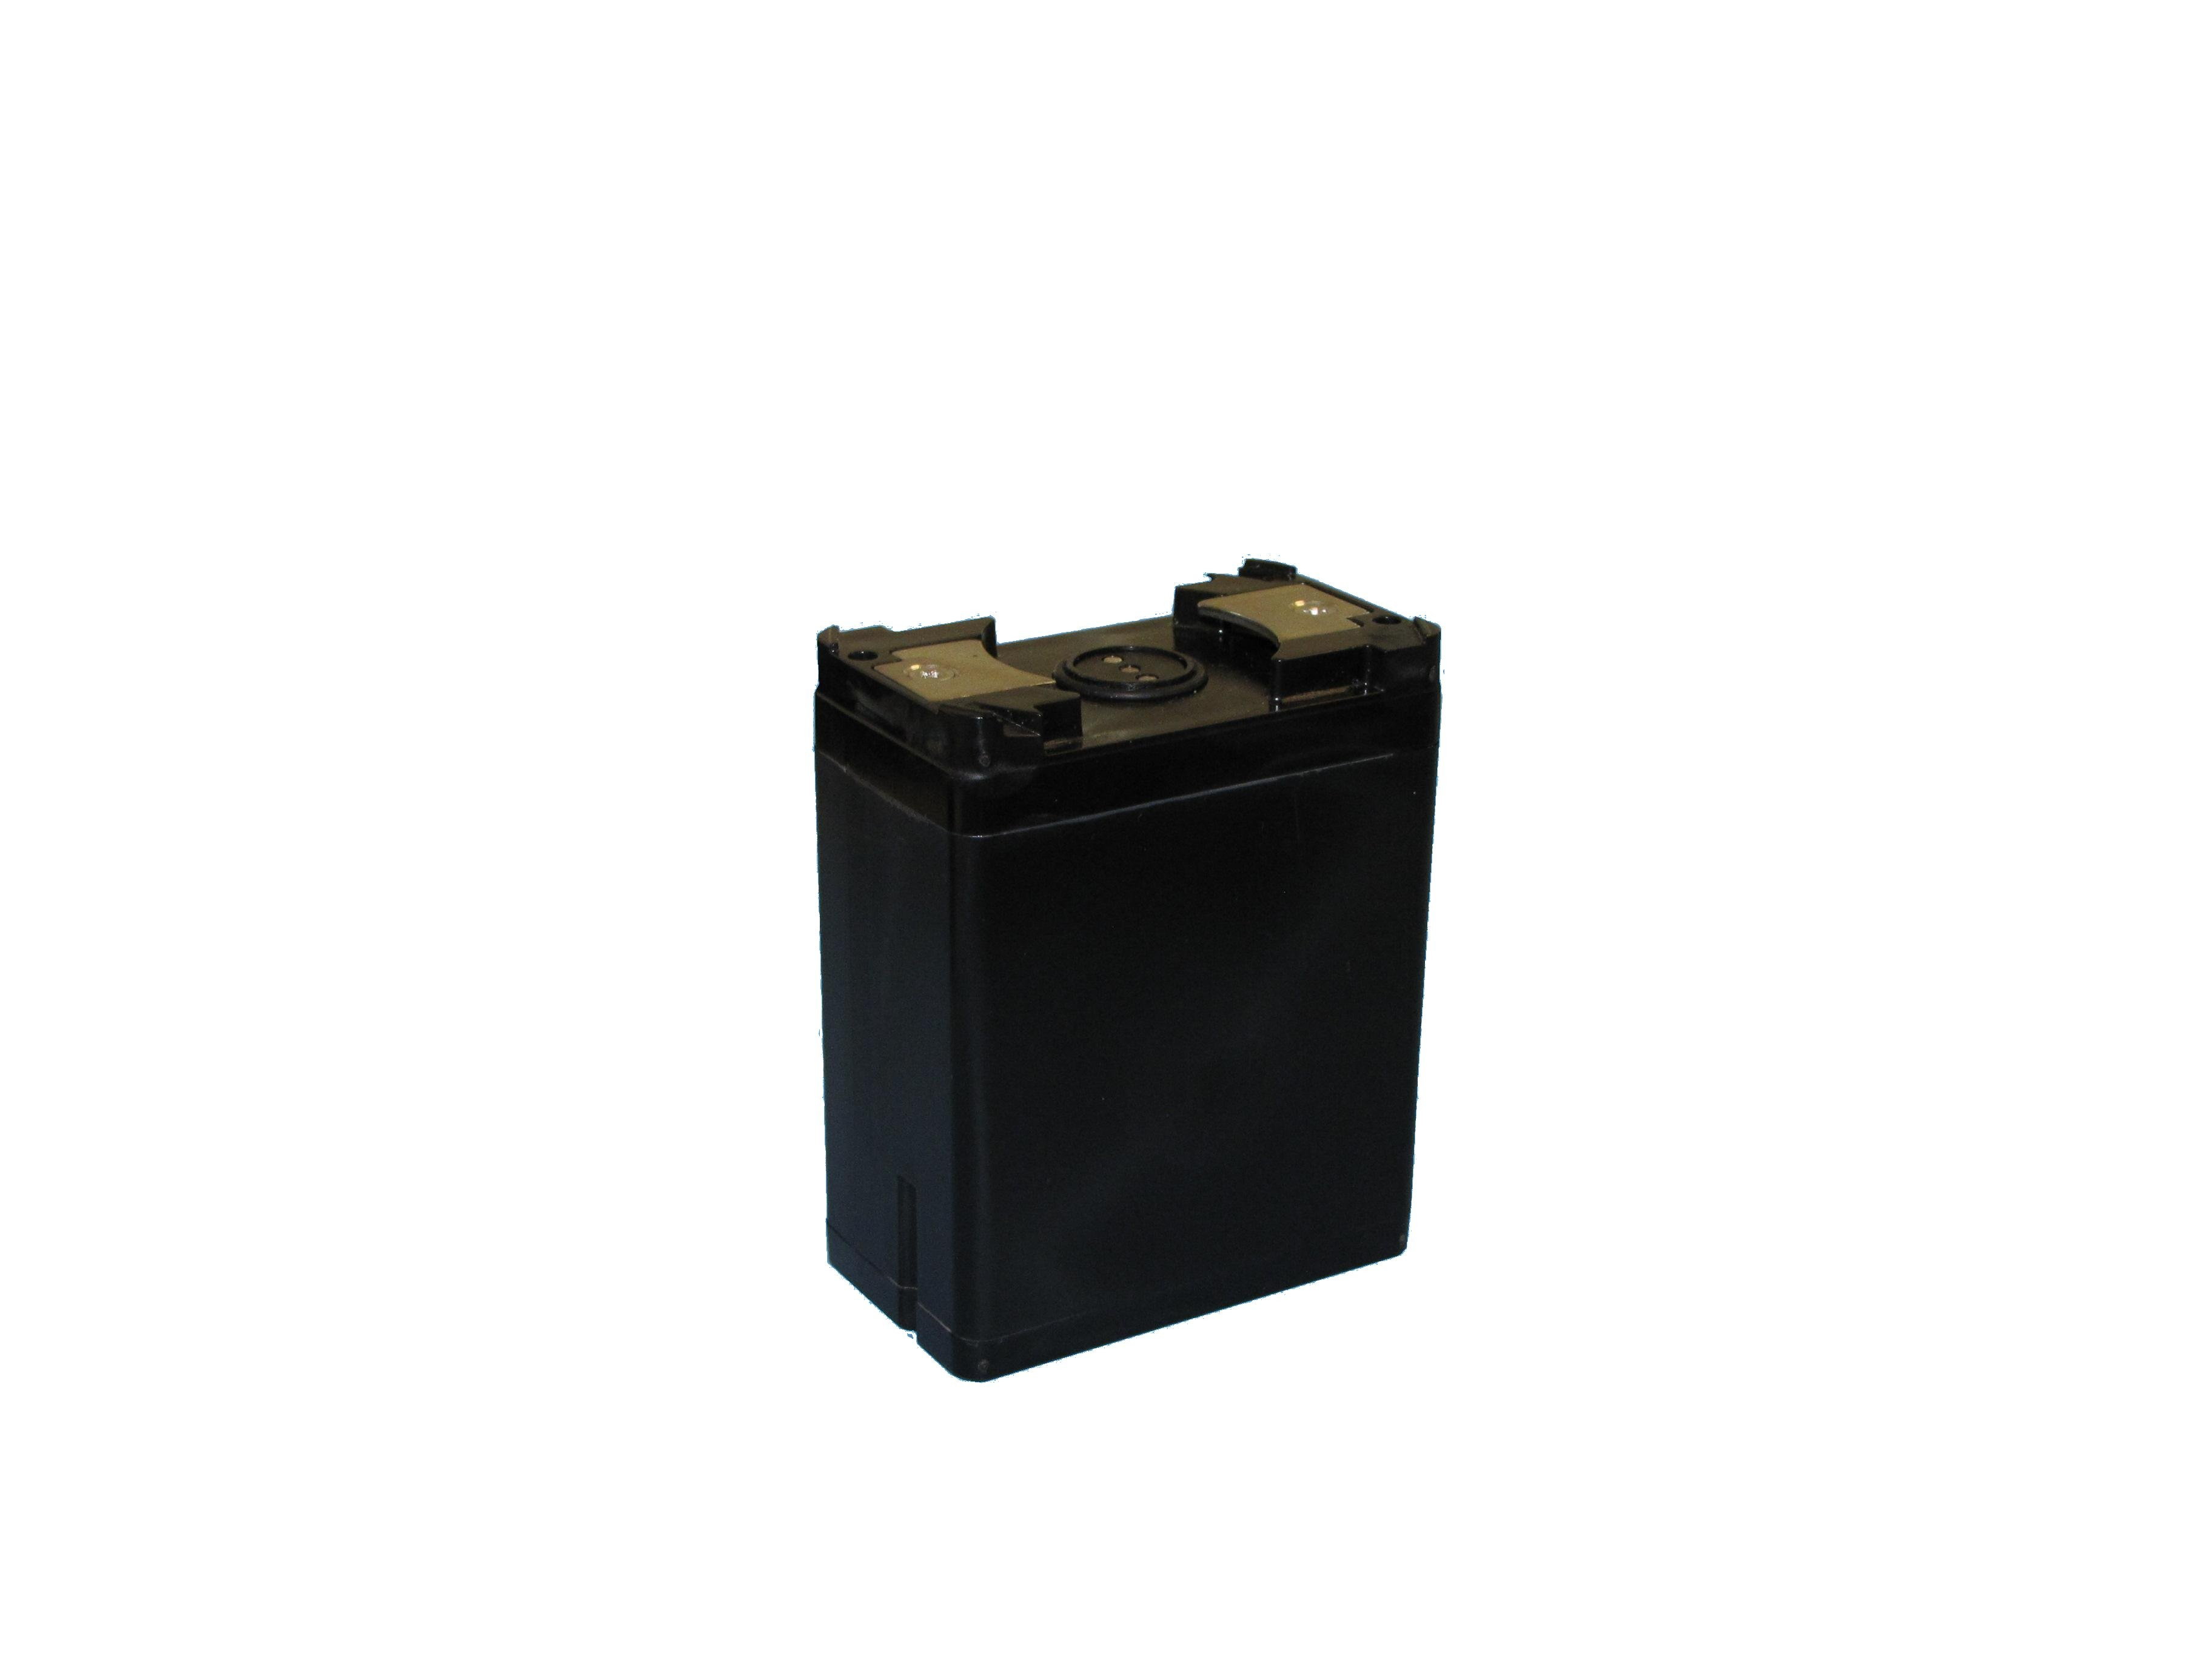 Battery: BT-70716BG (ALI-130)